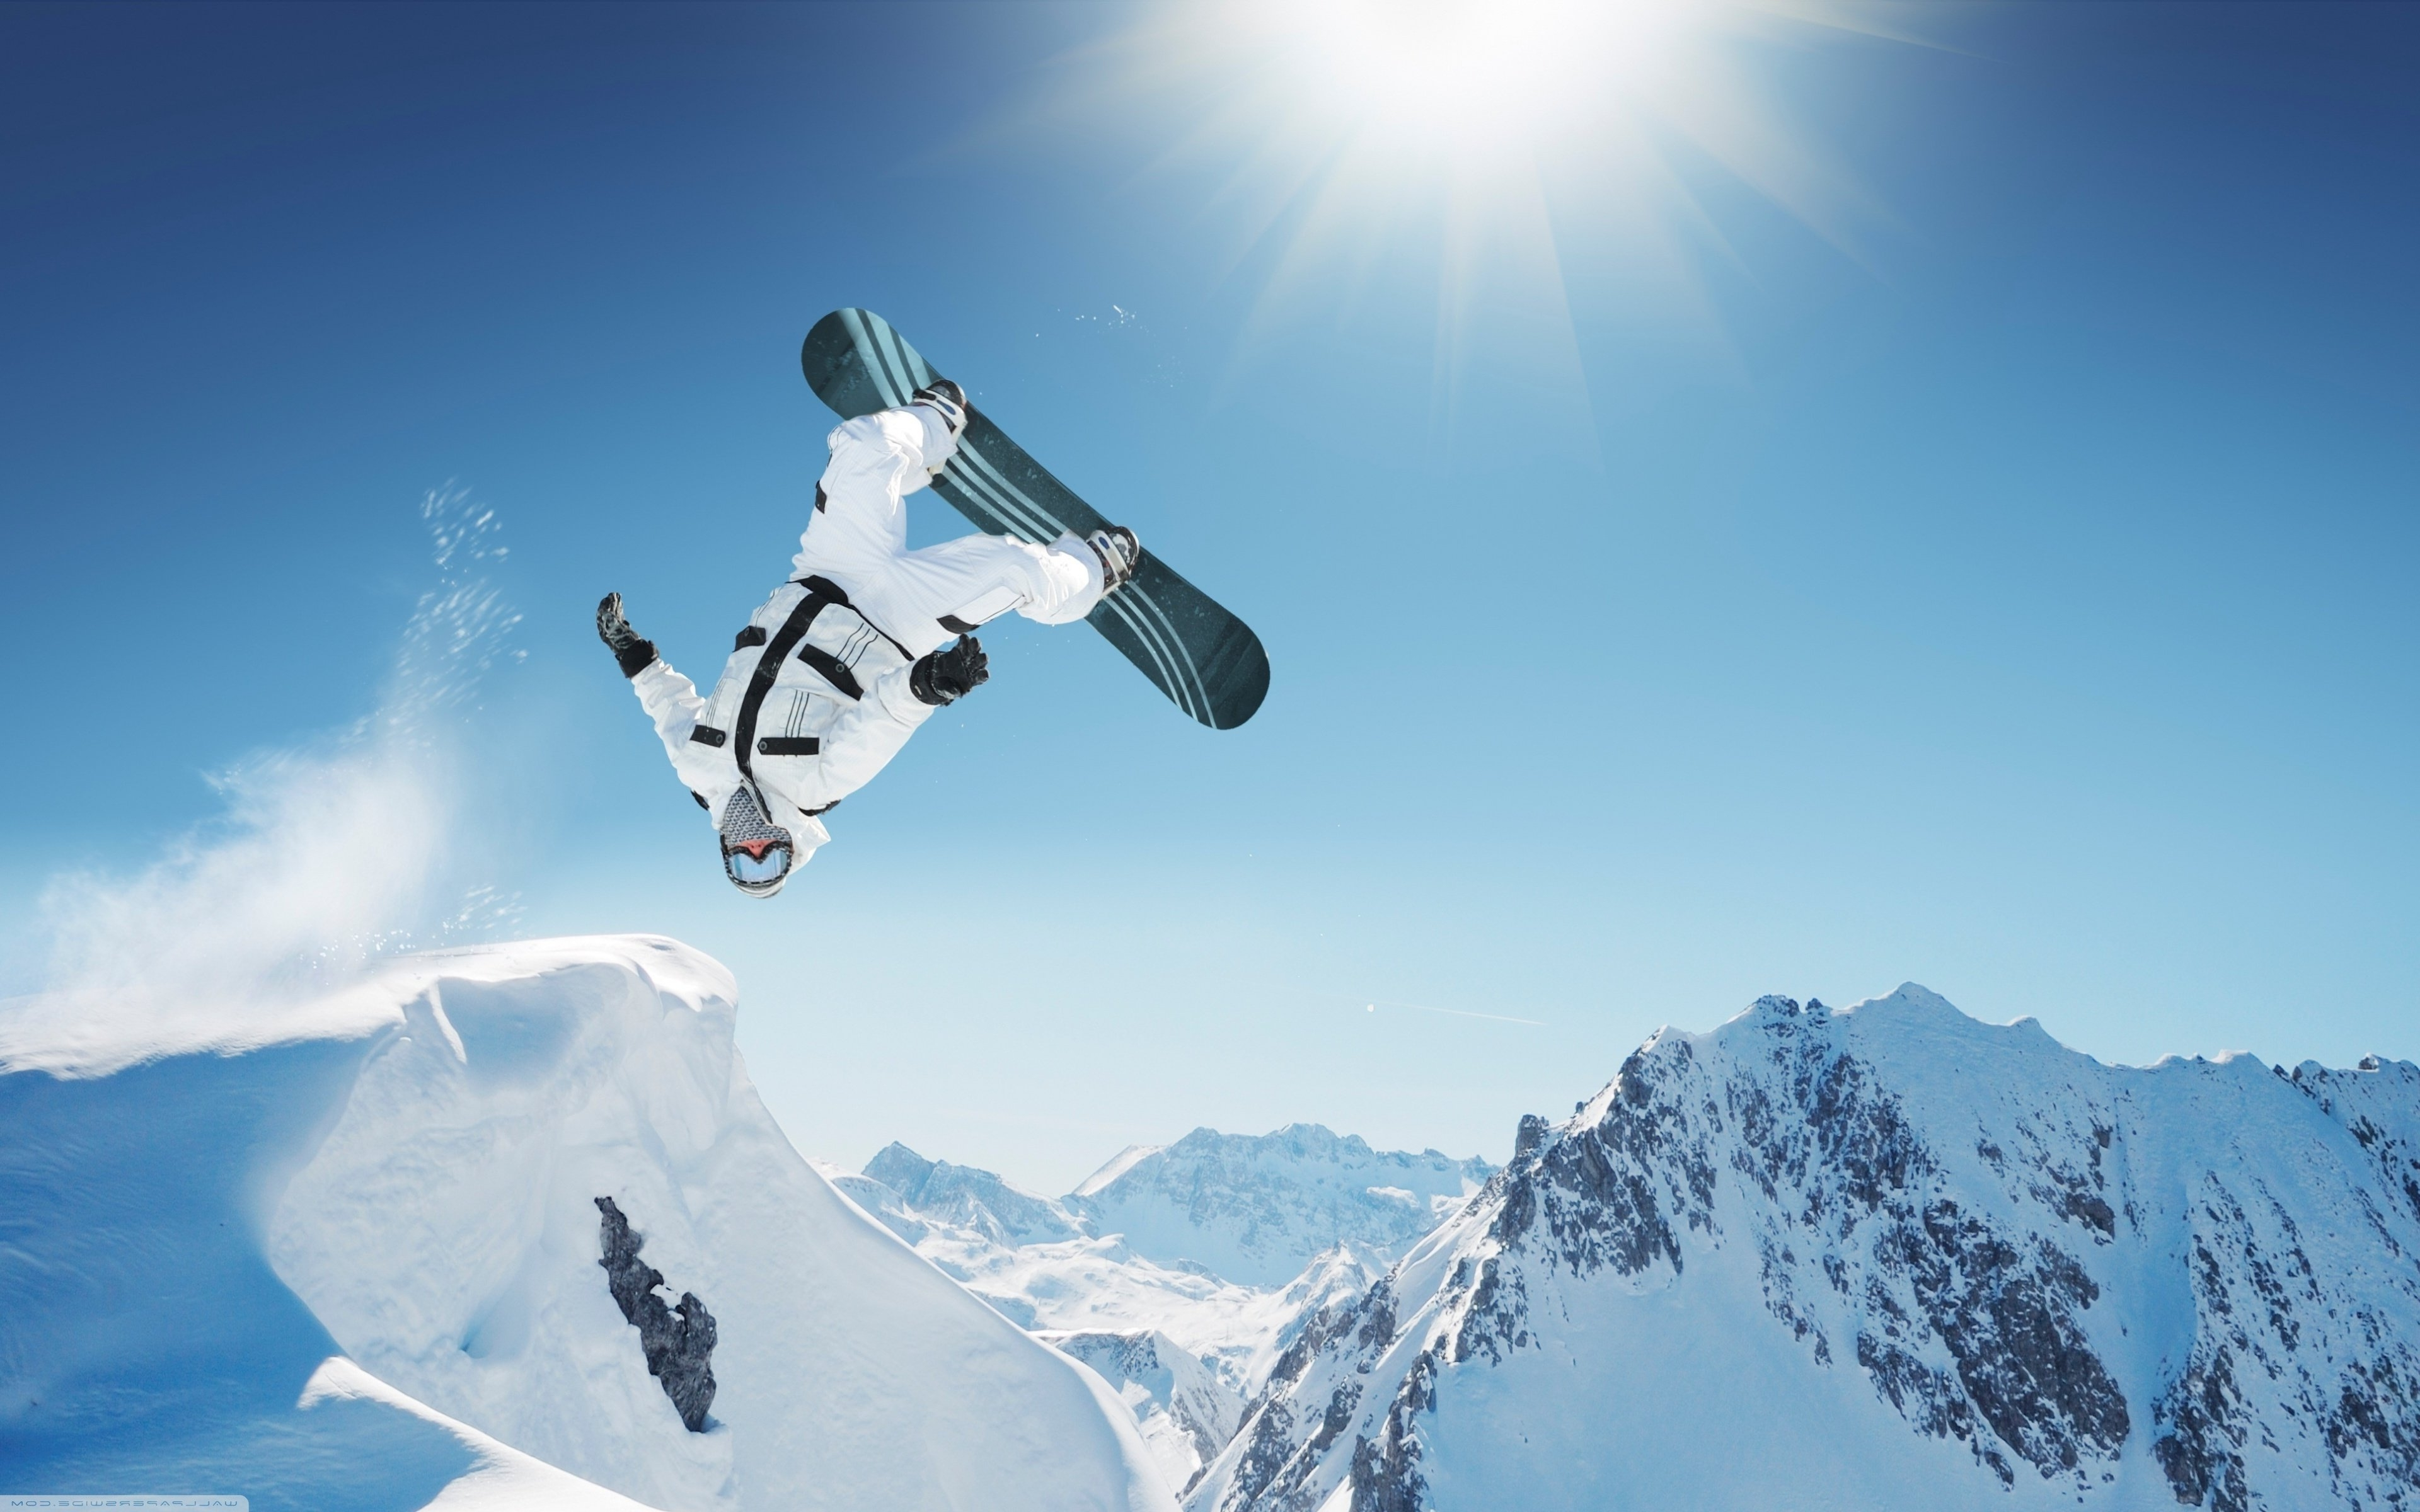 Nice wallpapers Snowboarding 3840x2400px